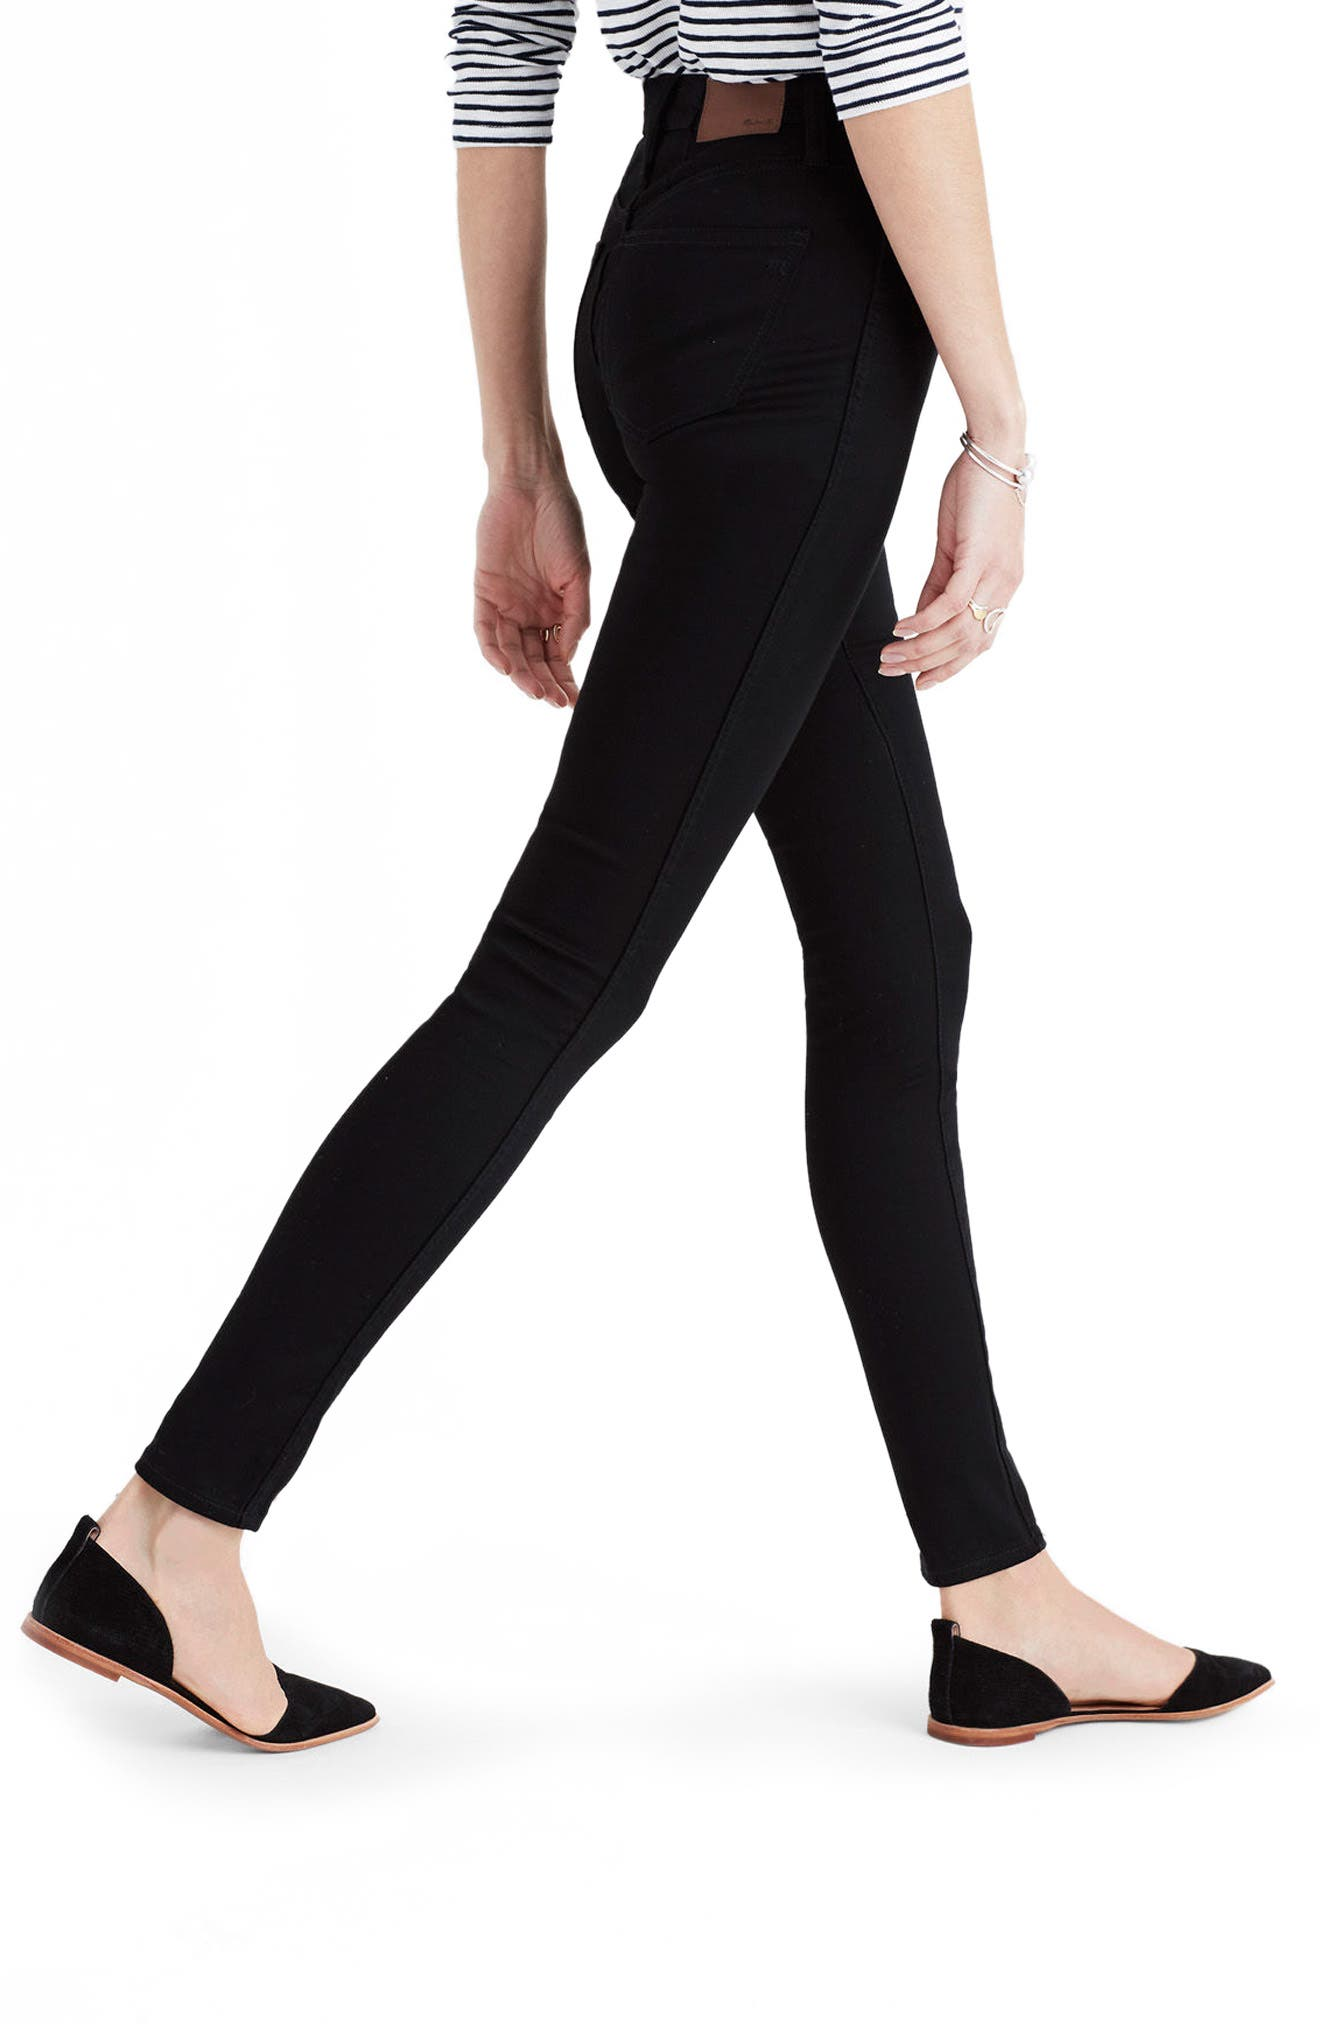 10-Inch High Waist Skinny Jeans,                             Alternate thumbnail 2, color,                             Carbondale